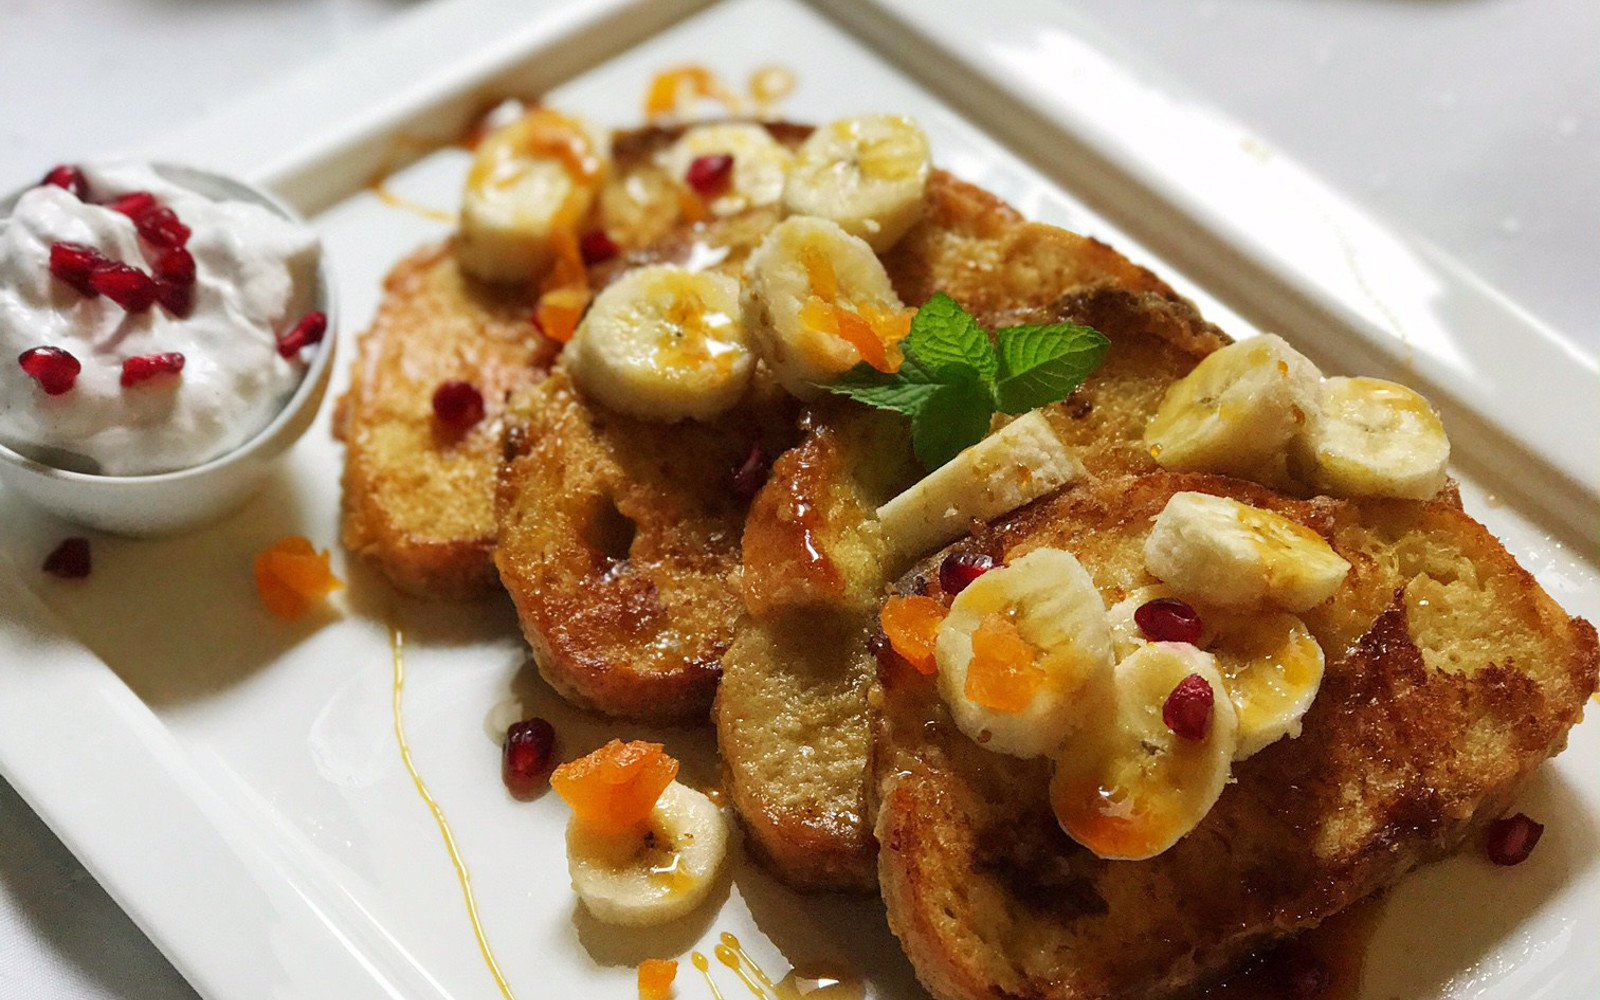 Apricot French Toast with banana